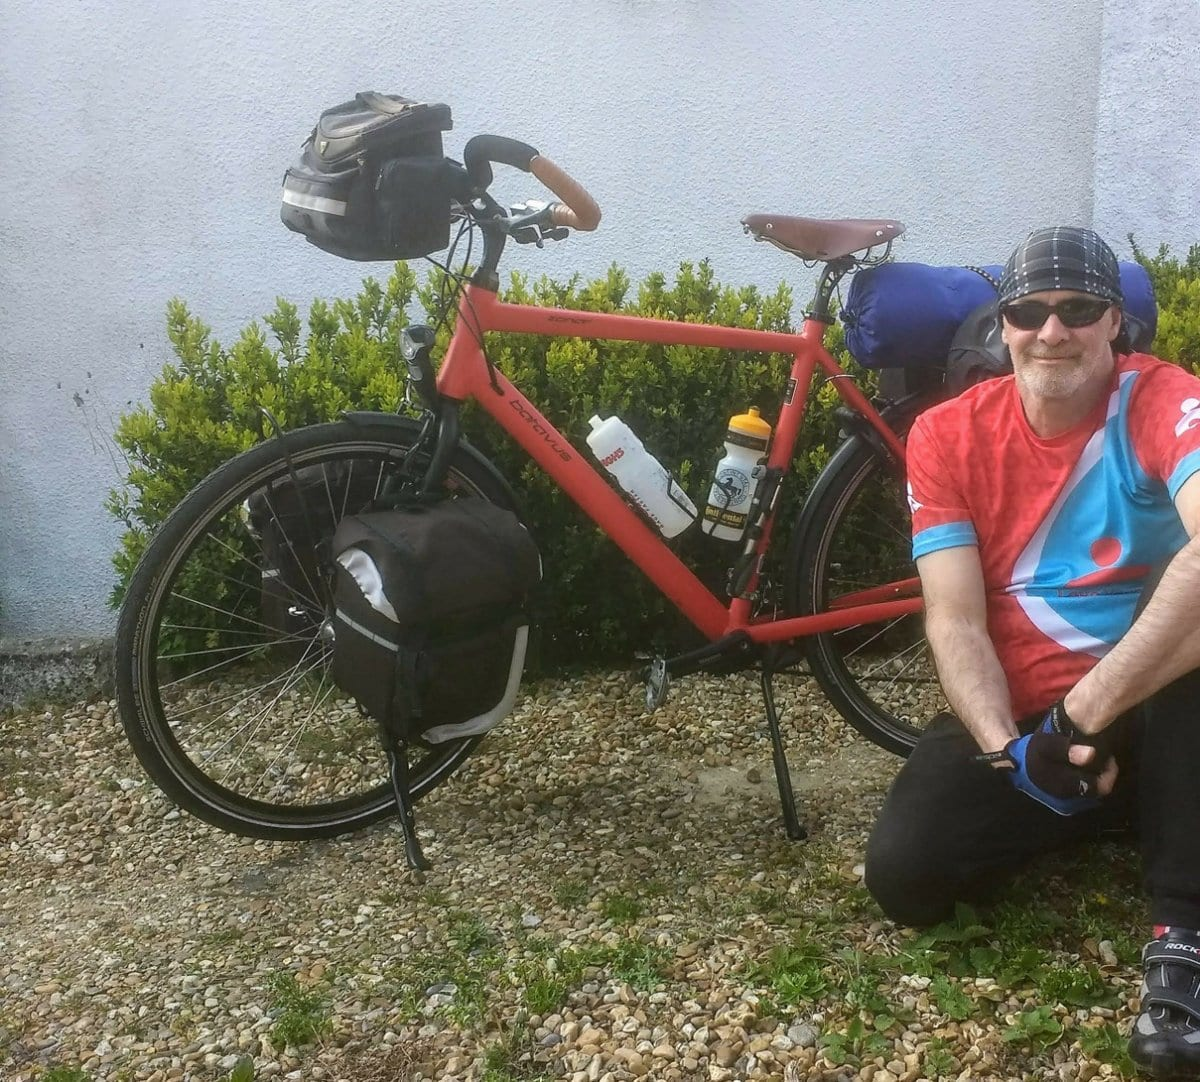 James Thomas cycling for charity in the UK